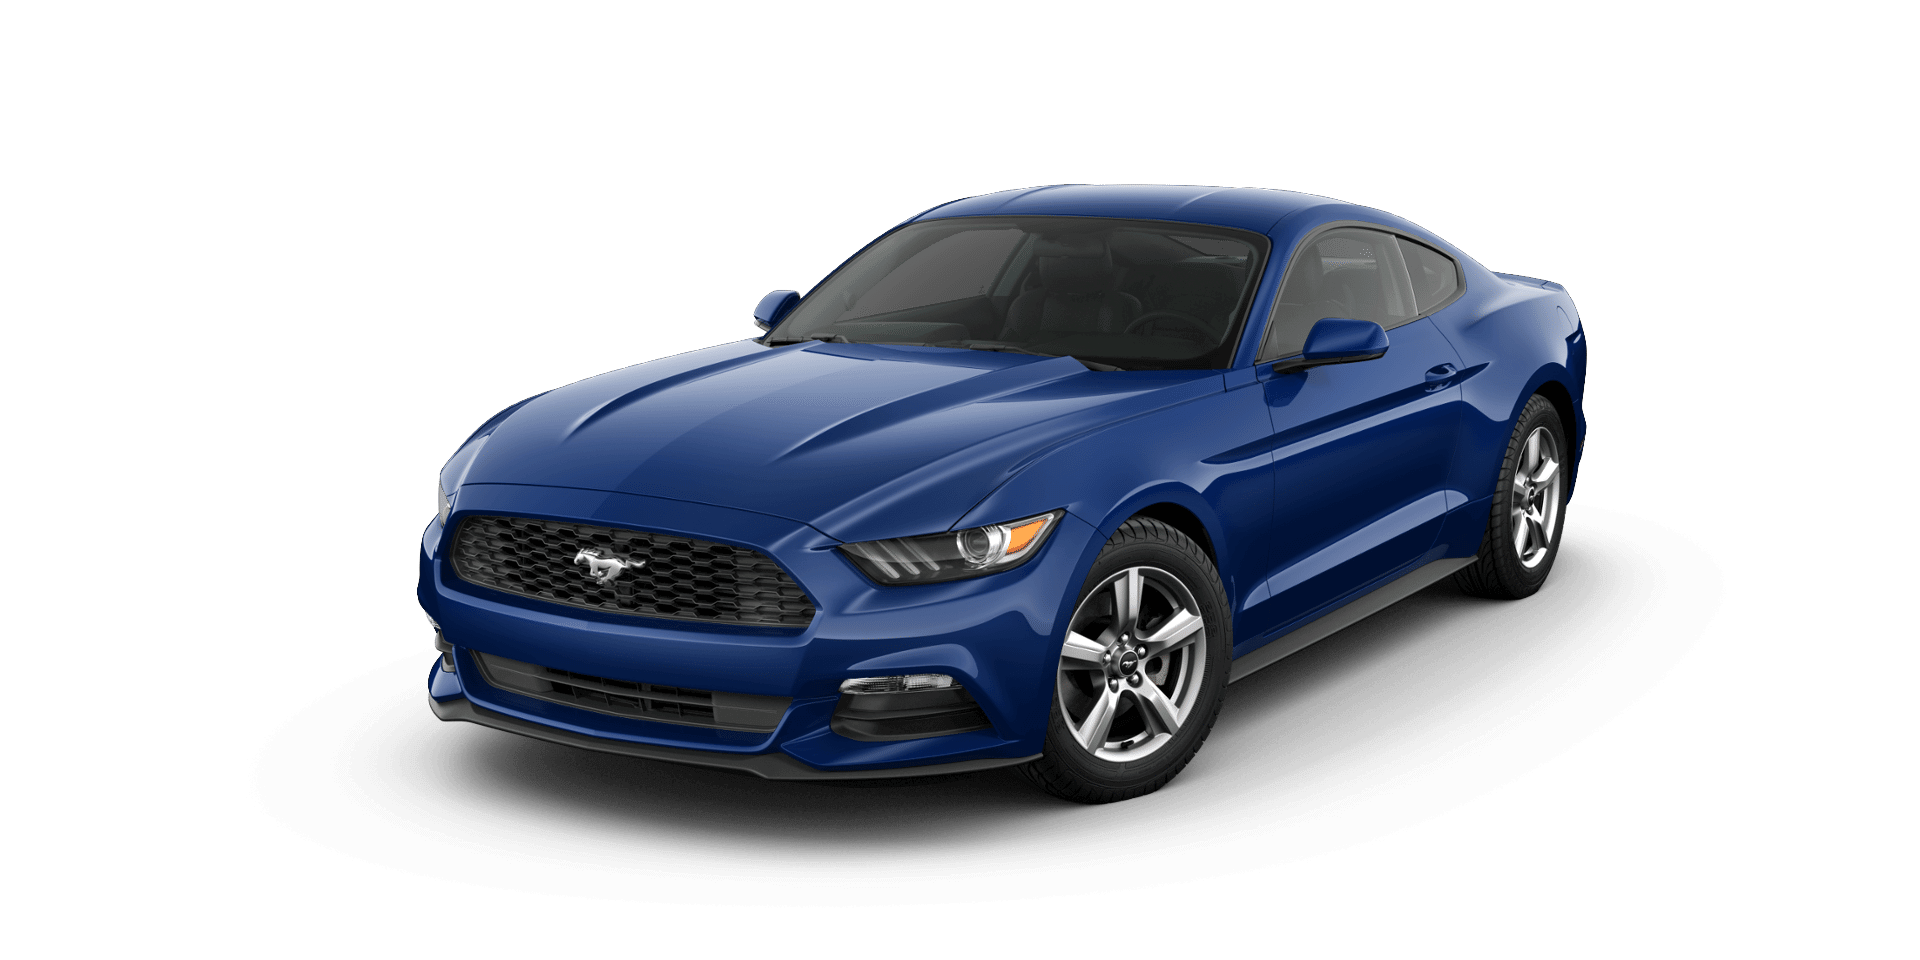 Ford Mustang Png Image Ford Mustang Mustang Ford Mustang Gt